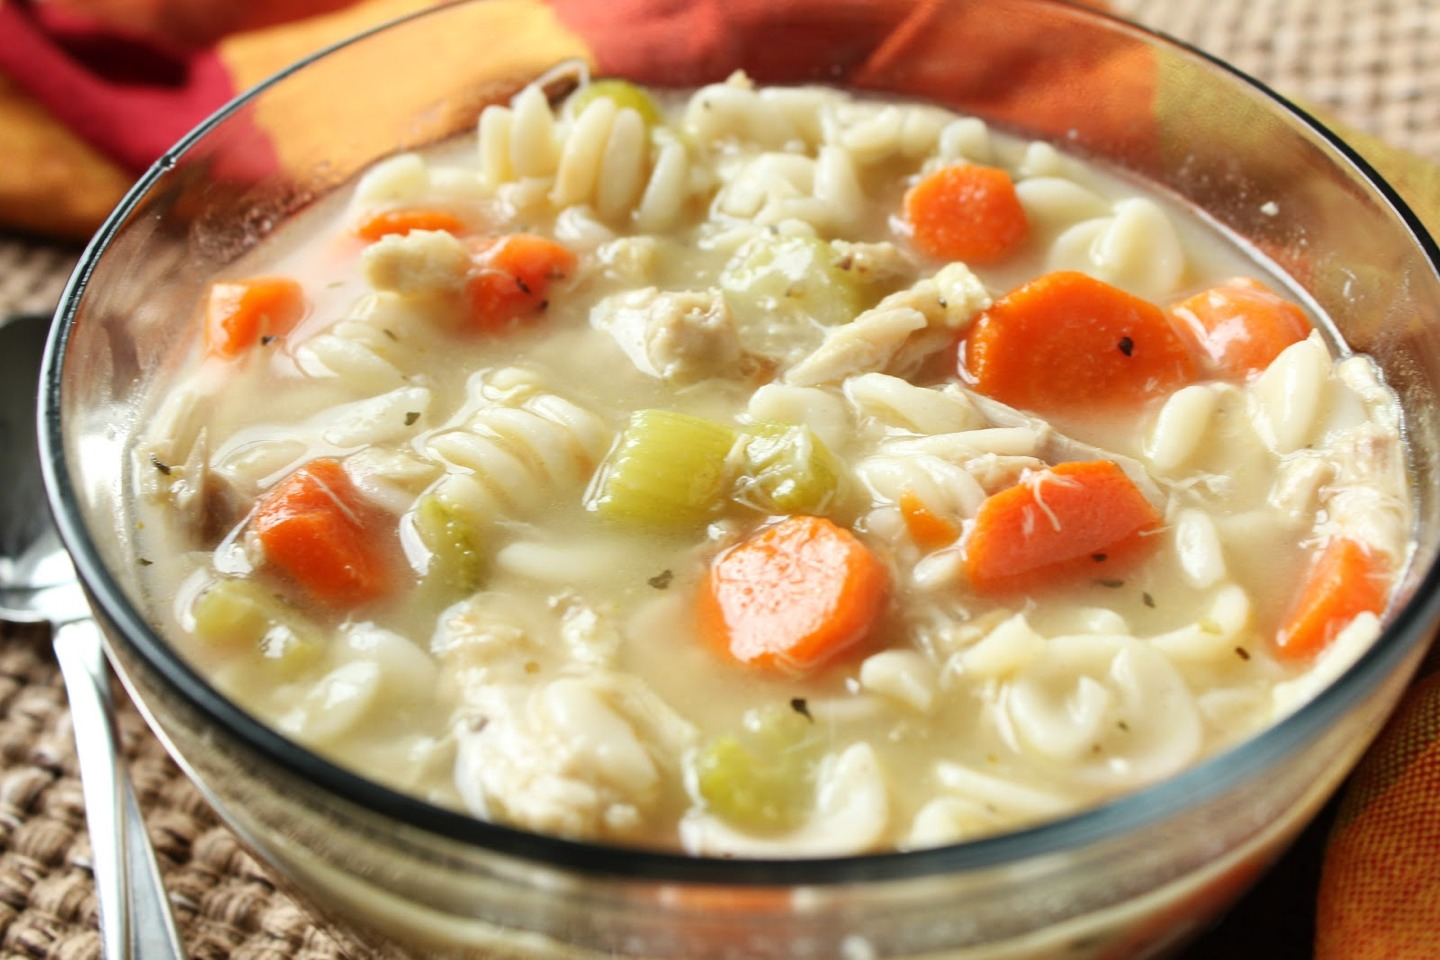 An enzyme produced in the chicken broth helps with immune defense.